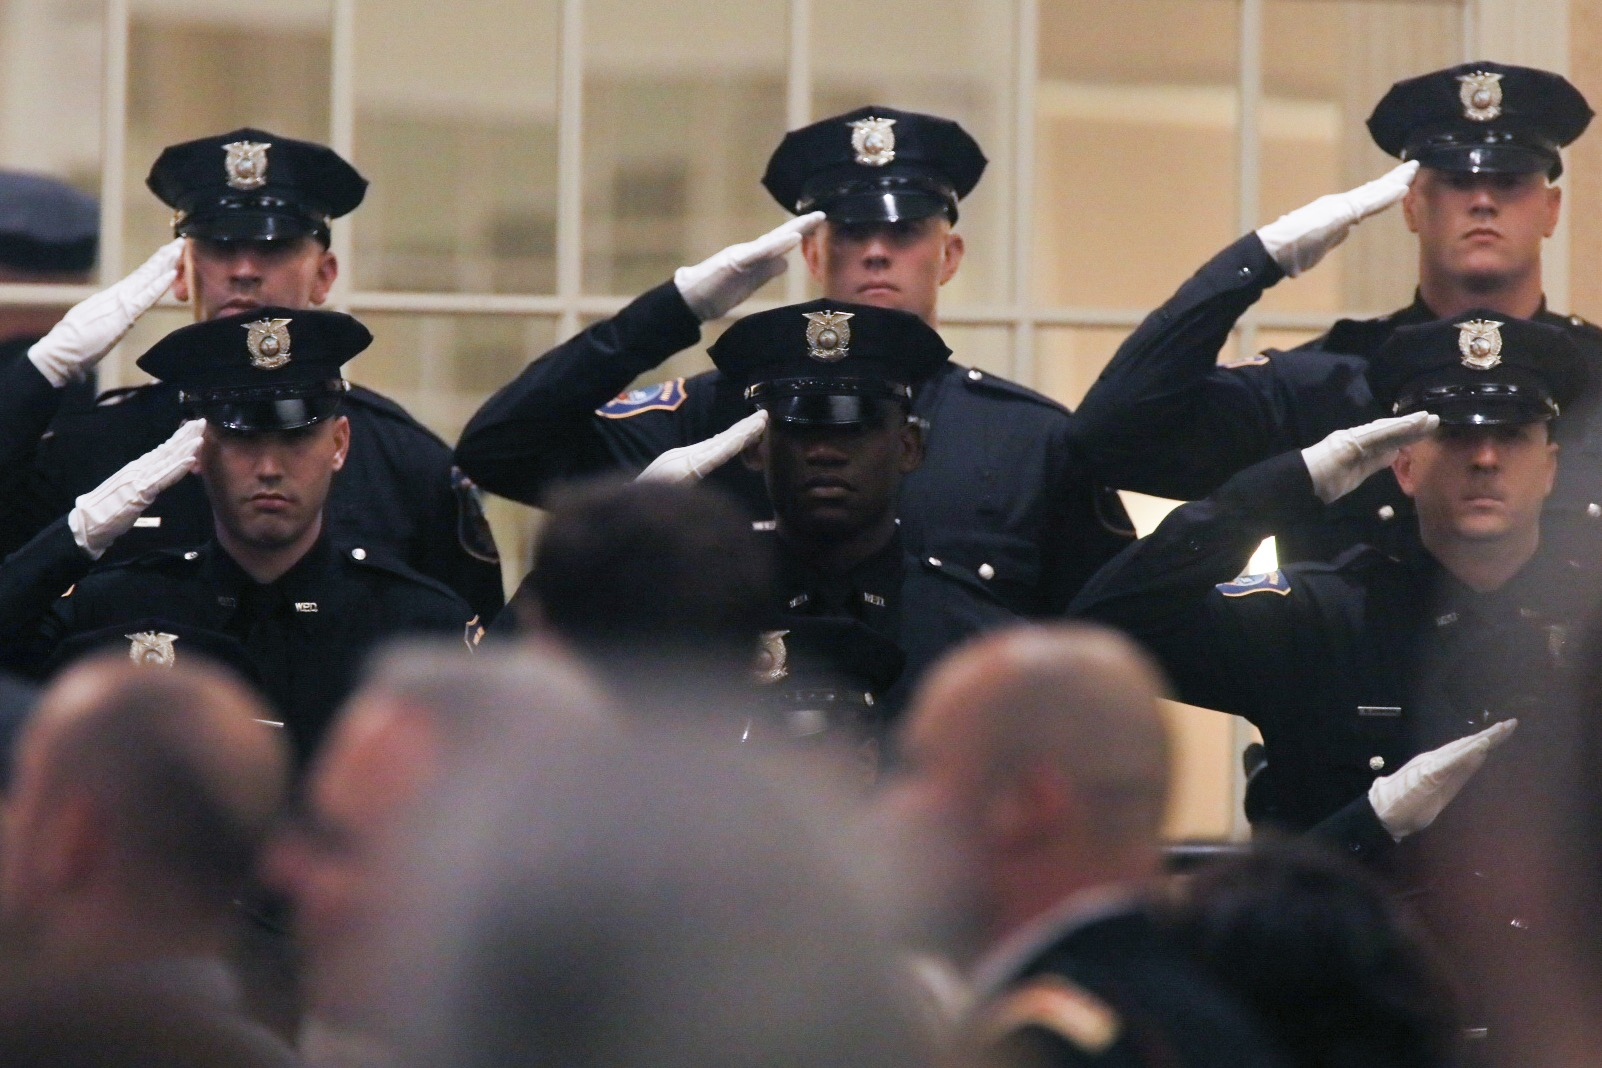 Wilmington's Newest Police Officers Take Their Oath of Office   City